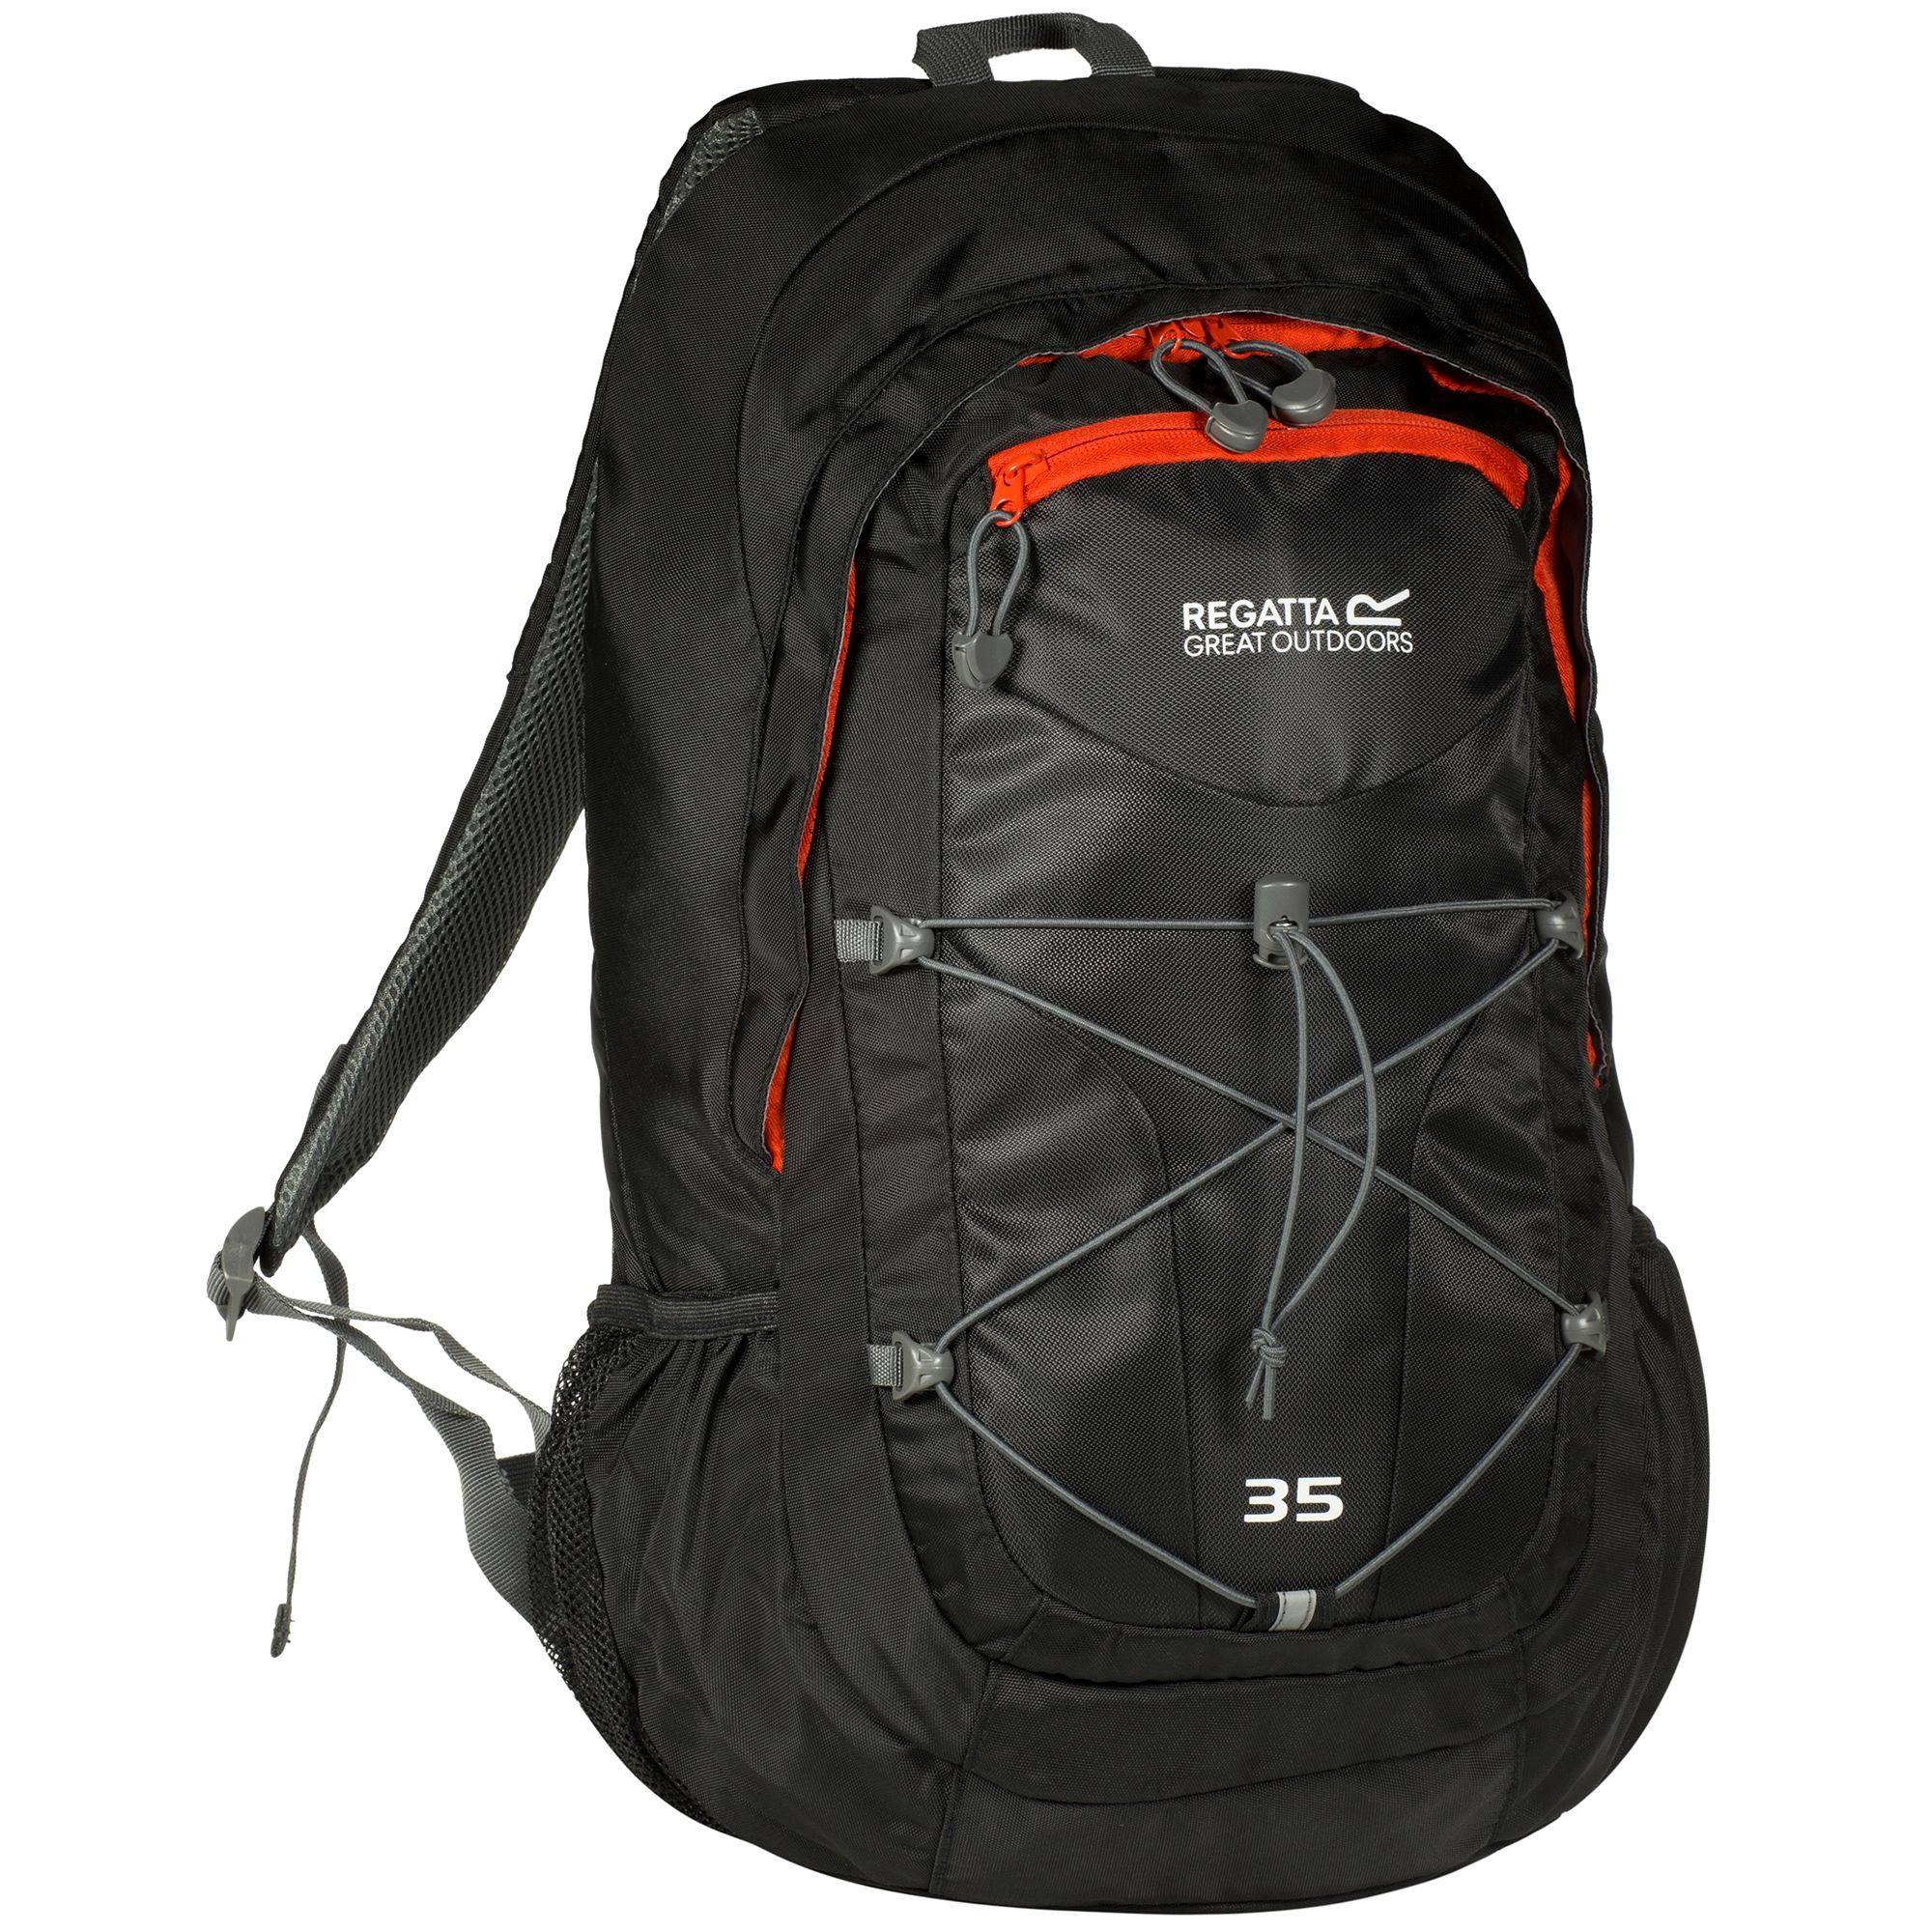 regatta great outdoors atholl 35 litre rucksack daypack ebay. Black Bedroom Furniture Sets. Home Design Ideas